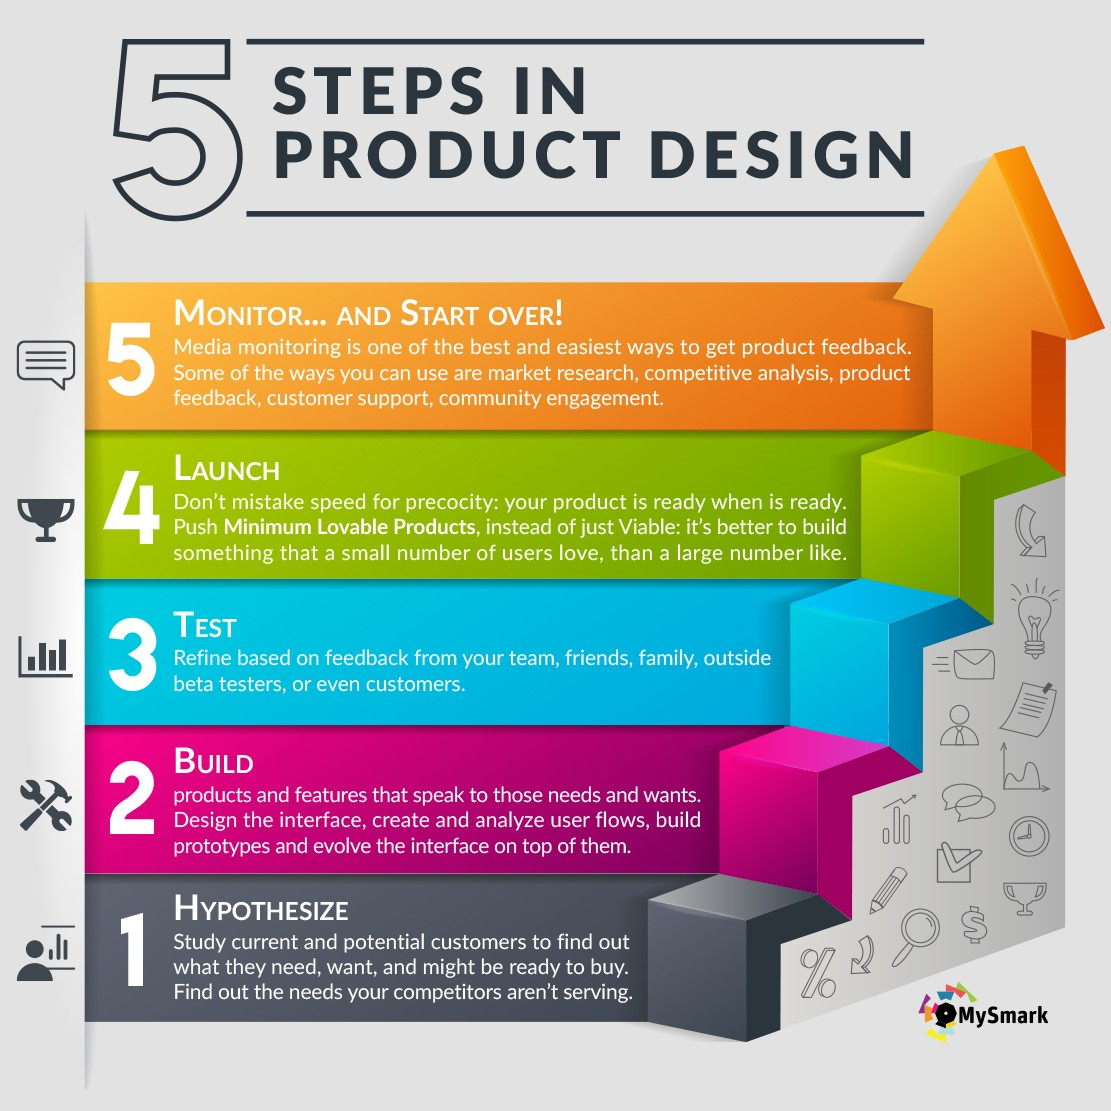 5 steps in product design